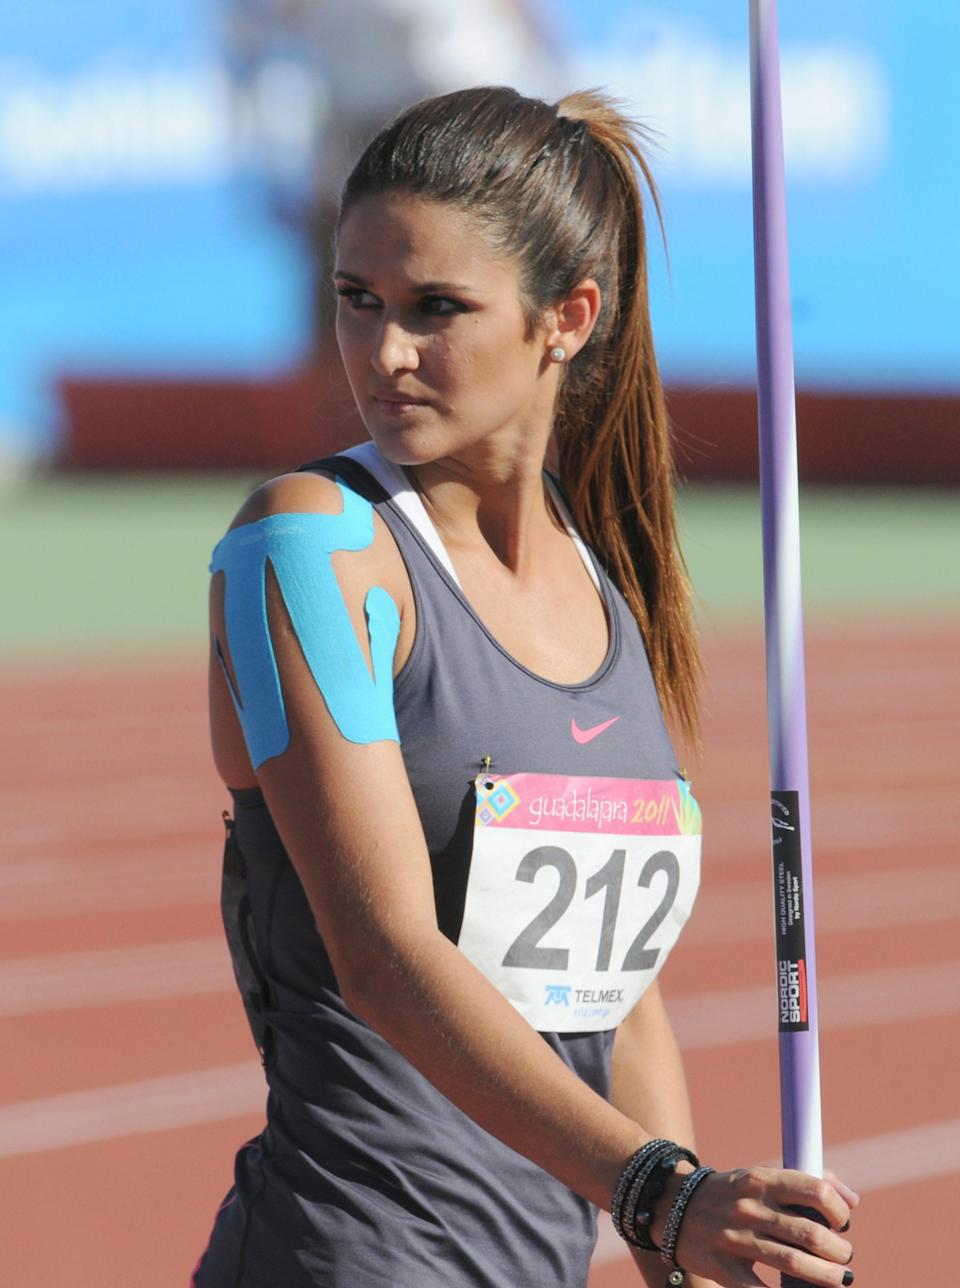 """Paraguay's Leryn Franco looks at her coach during the Javelin Throw competition, at the 2011 Pan-American Games, held at the track of """"Estadio Telmex"""" on October 27, 2011 in Guadalajara, Mexico. Franco was thirteenth with a 48.70m performance. (Photo by Eduardo G Biscayart/LatinContent/Getty Images)"""